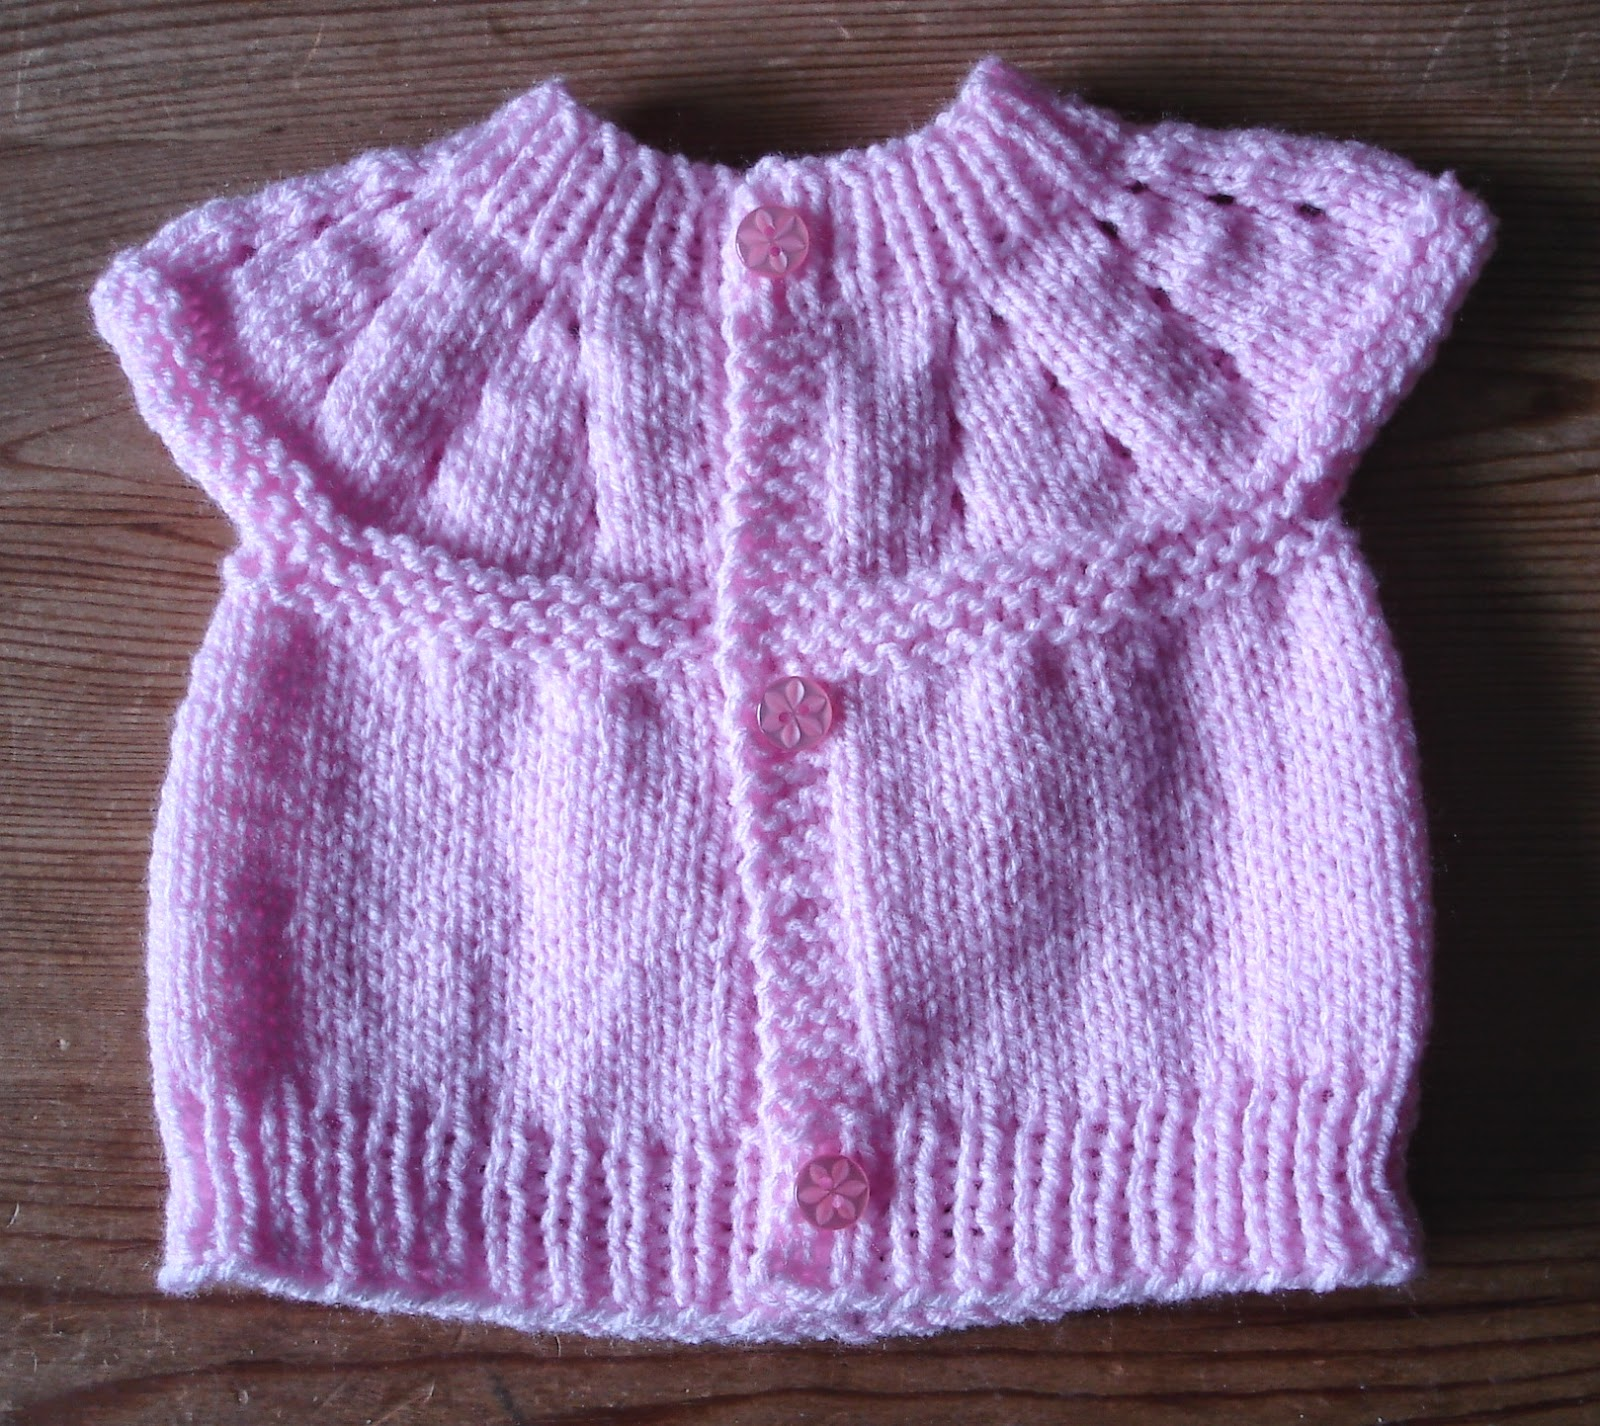 Knitting Patterns For Very Premature Babies : mariannas lazy daisy days: Its all about ...........Premature Babies